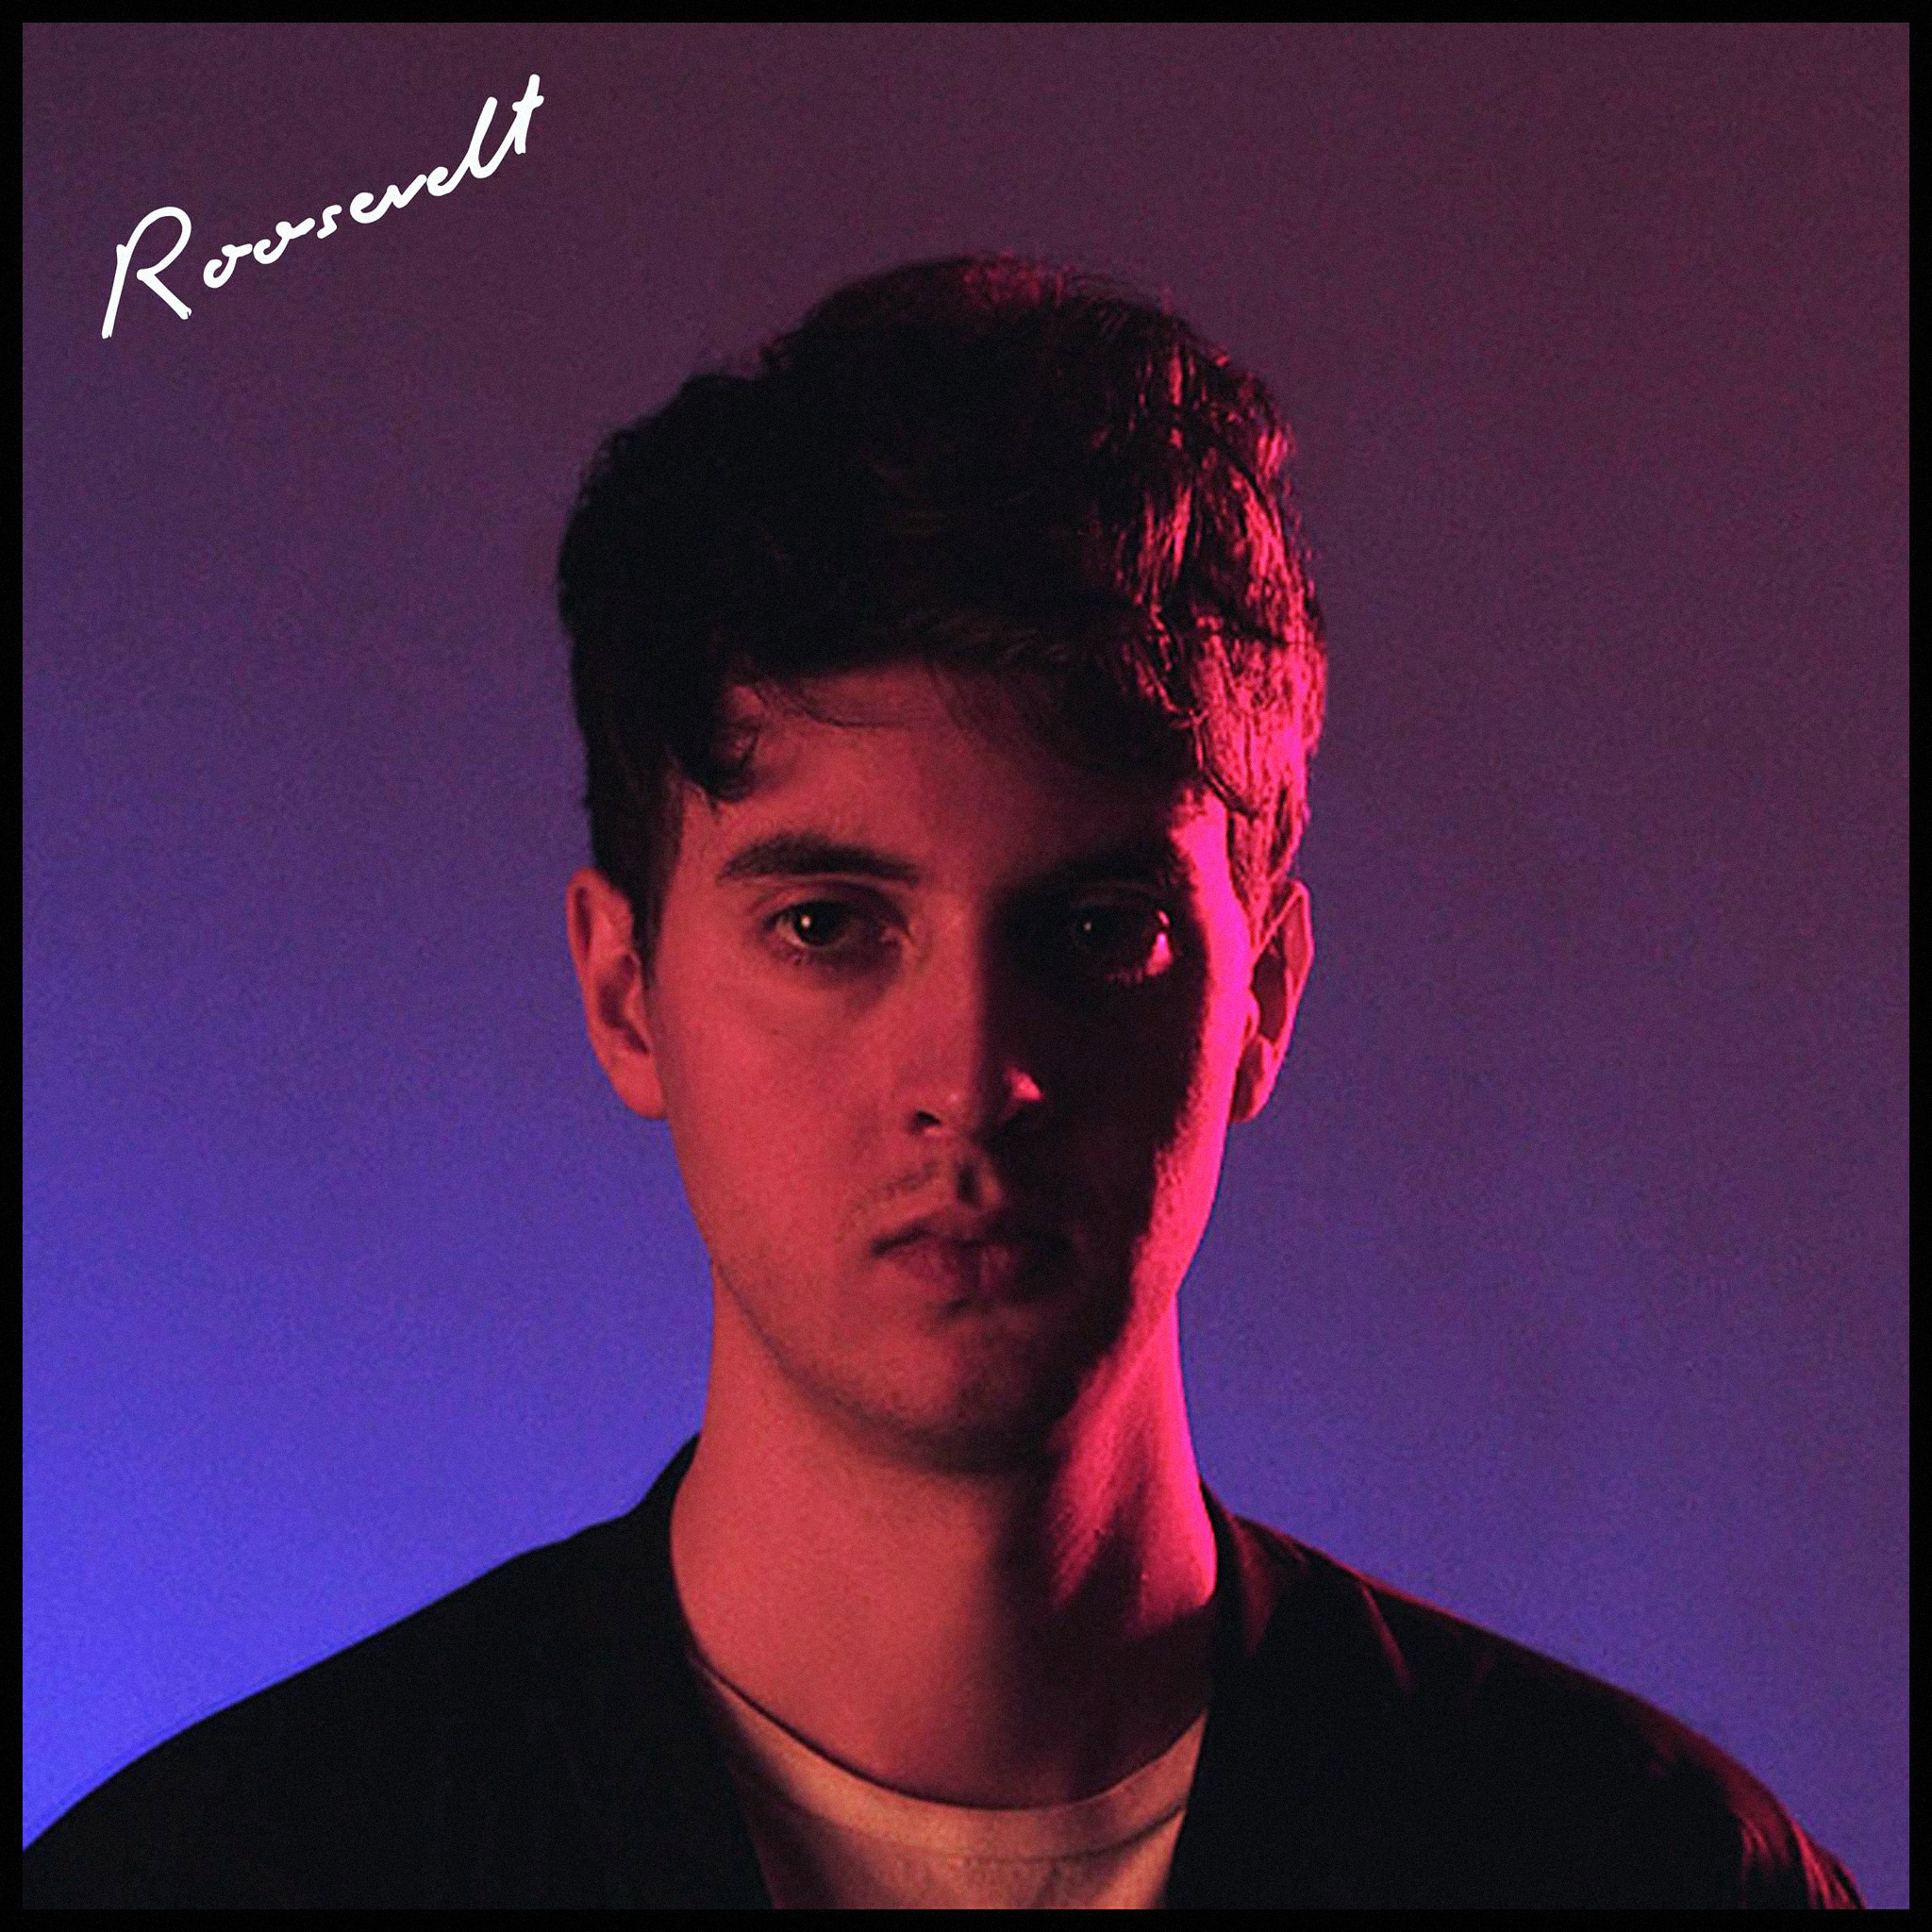 Roosevelt Self-titled Album Cover